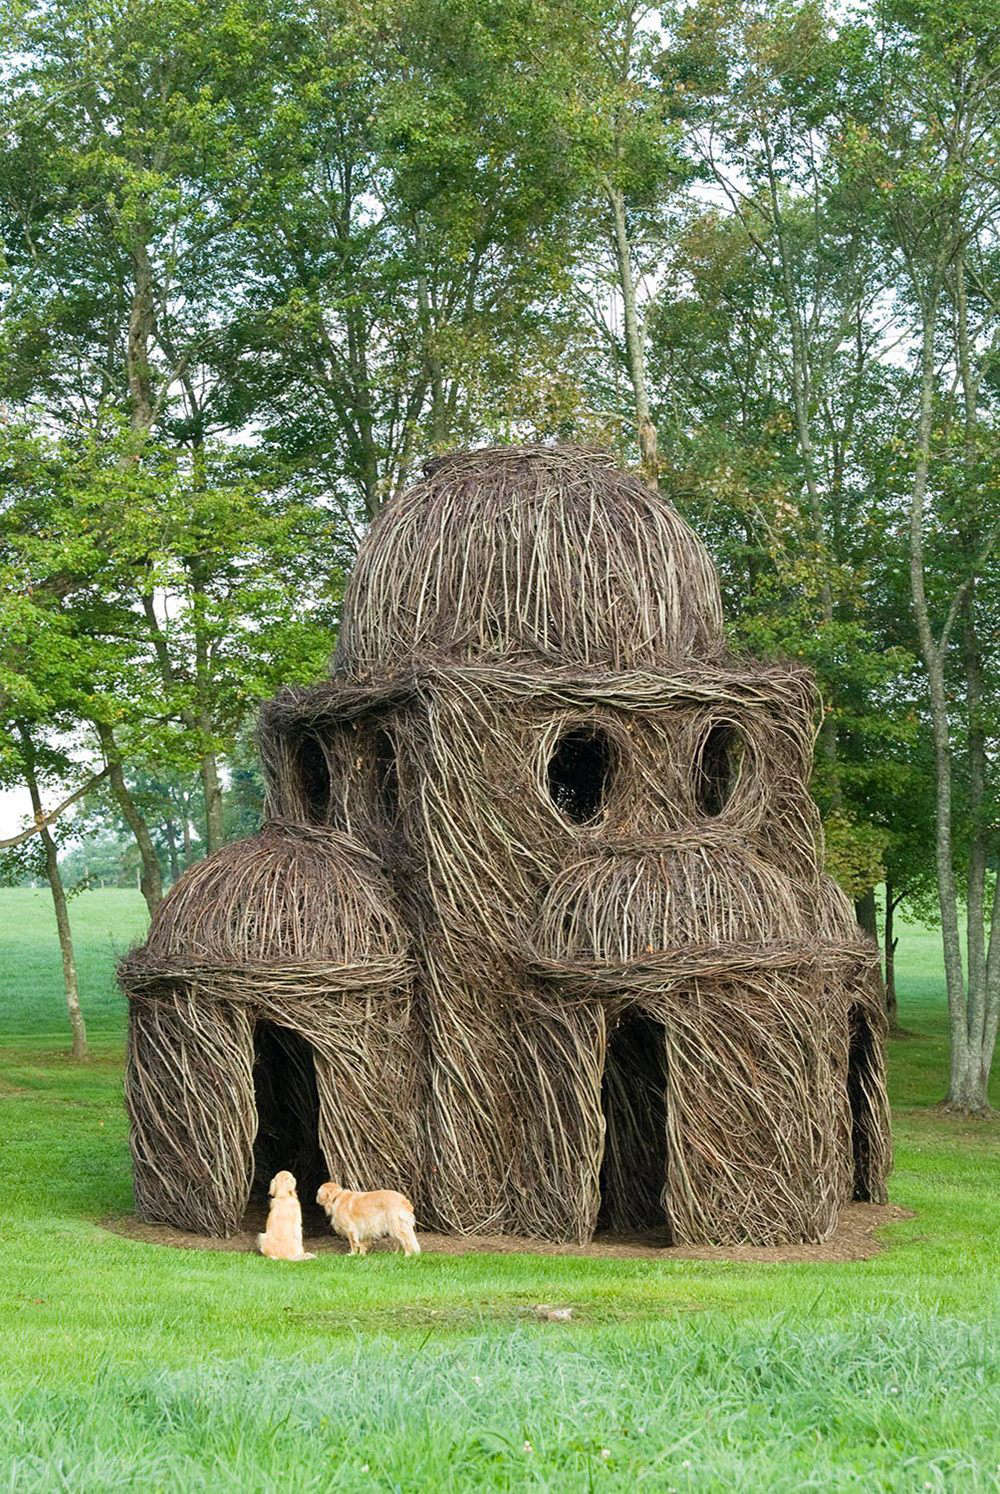 Chapel Hill, NC-based environmental artist Patrick Dougherty roams the country creating elaborate, site-specific woven sapling installations.